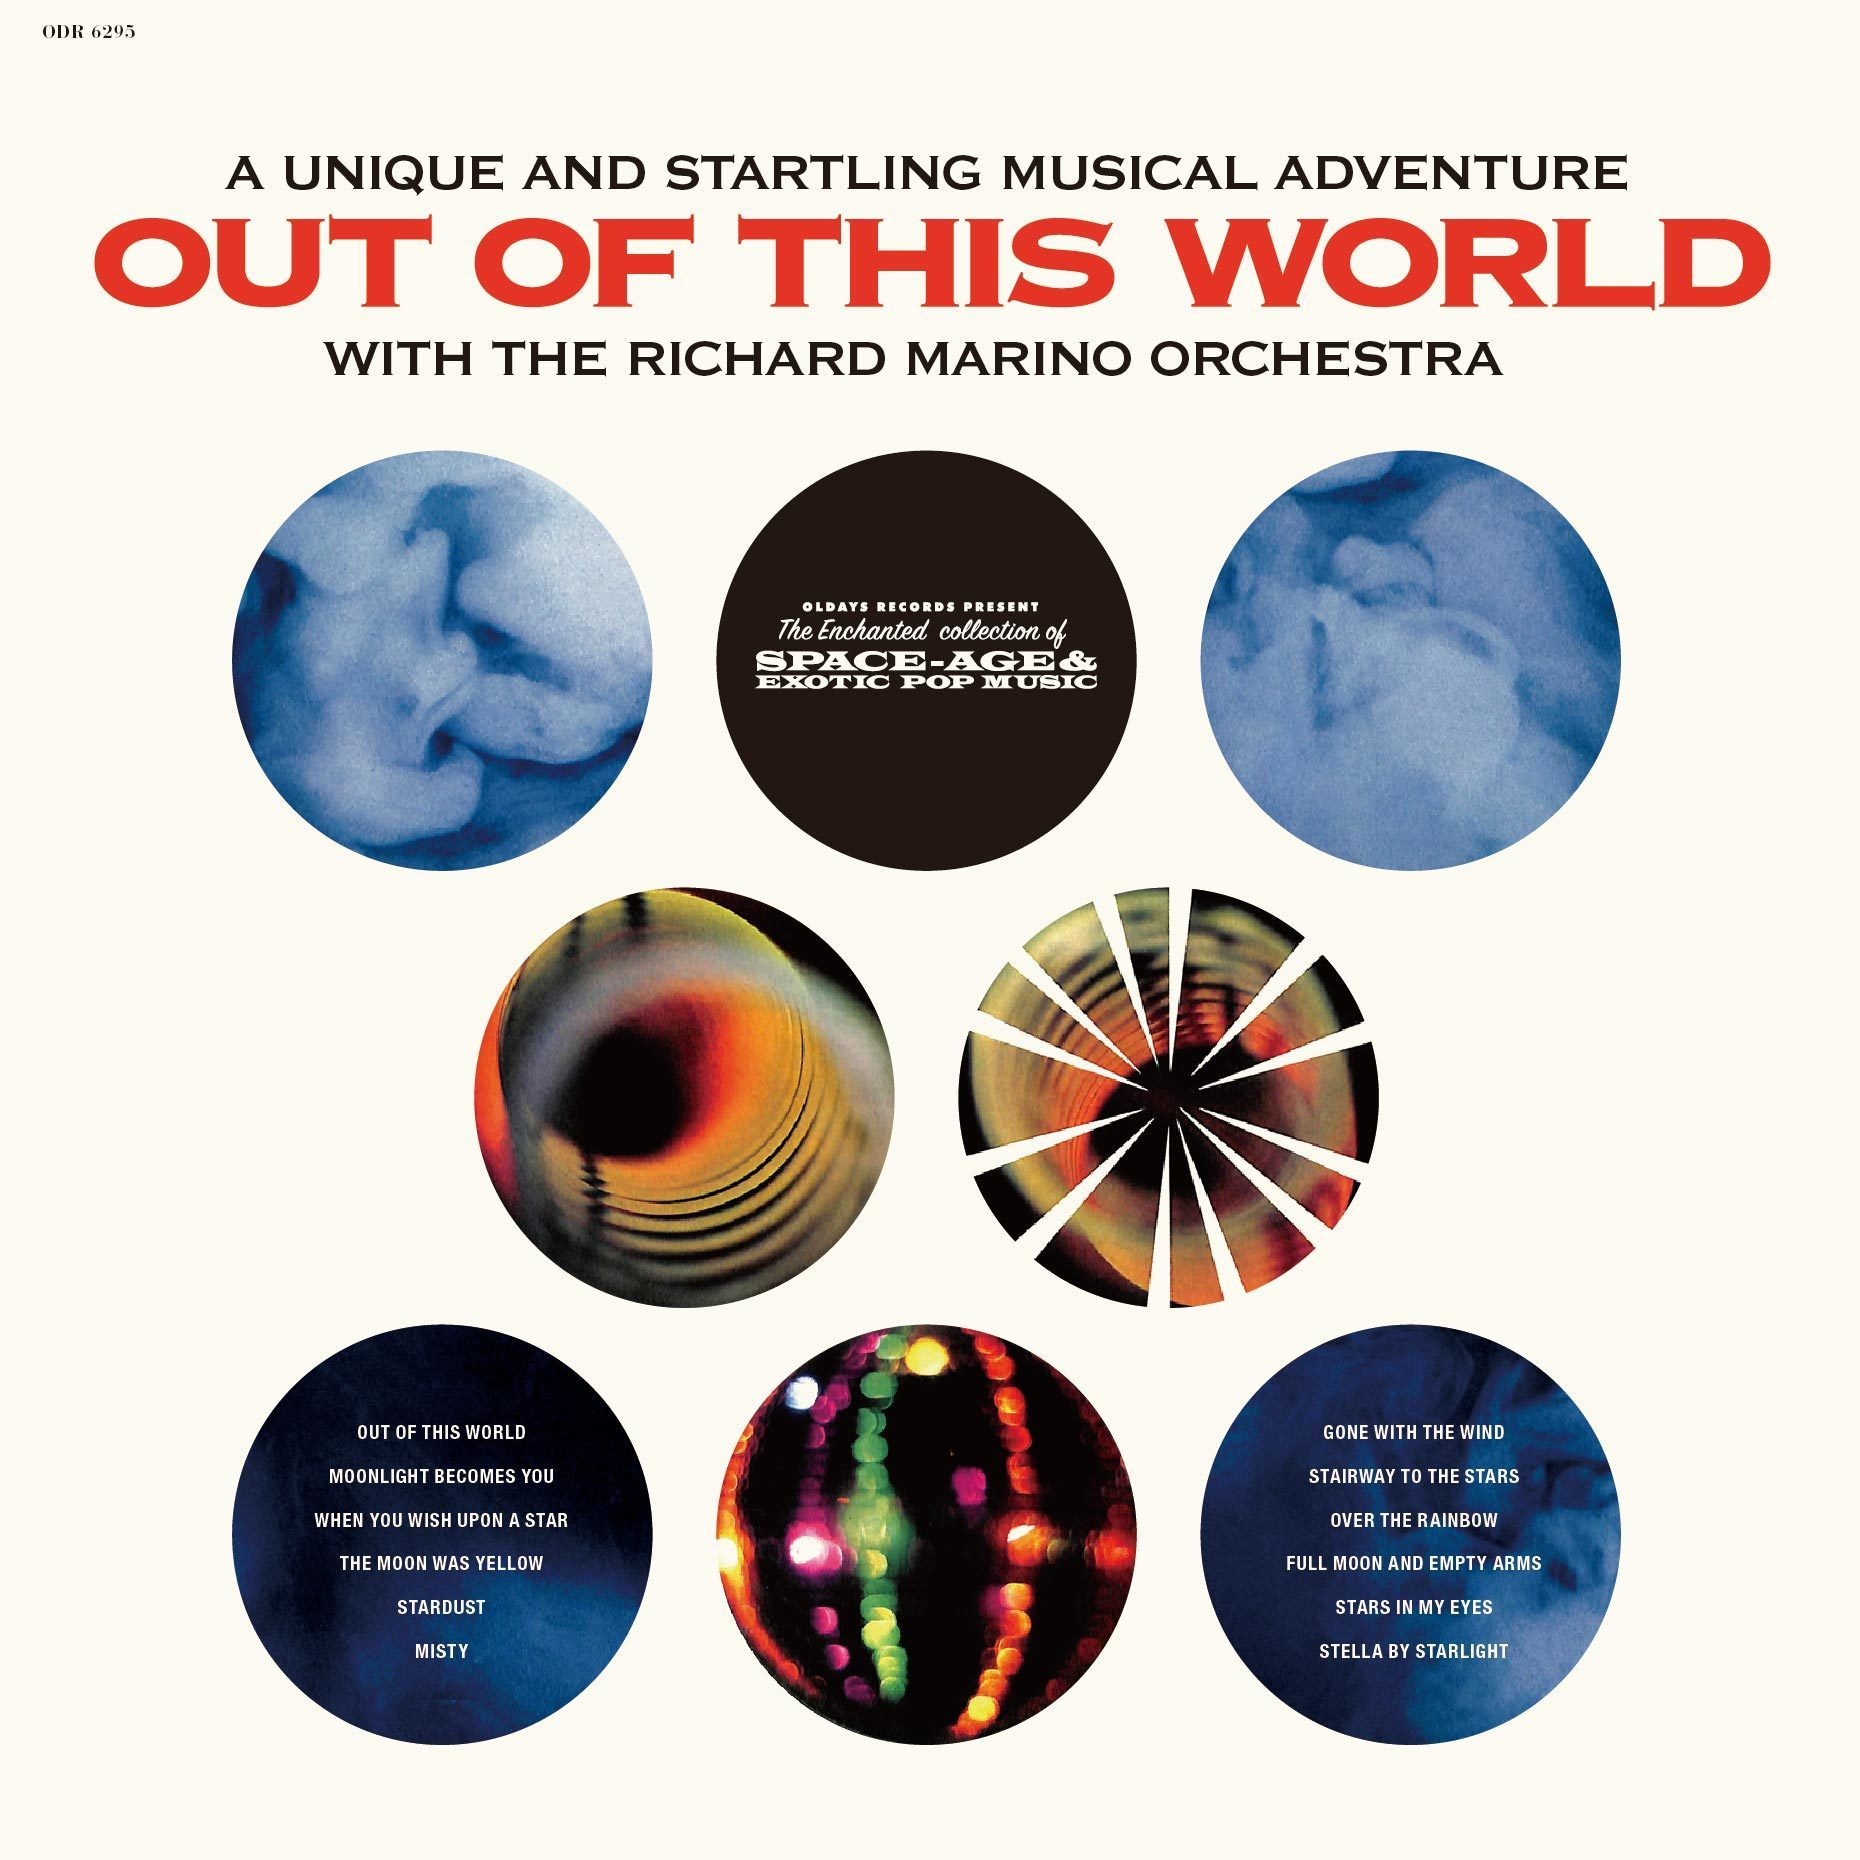 A Unique and Startling Musical Adventure: Out of This World with The Richard Marino Orchestra